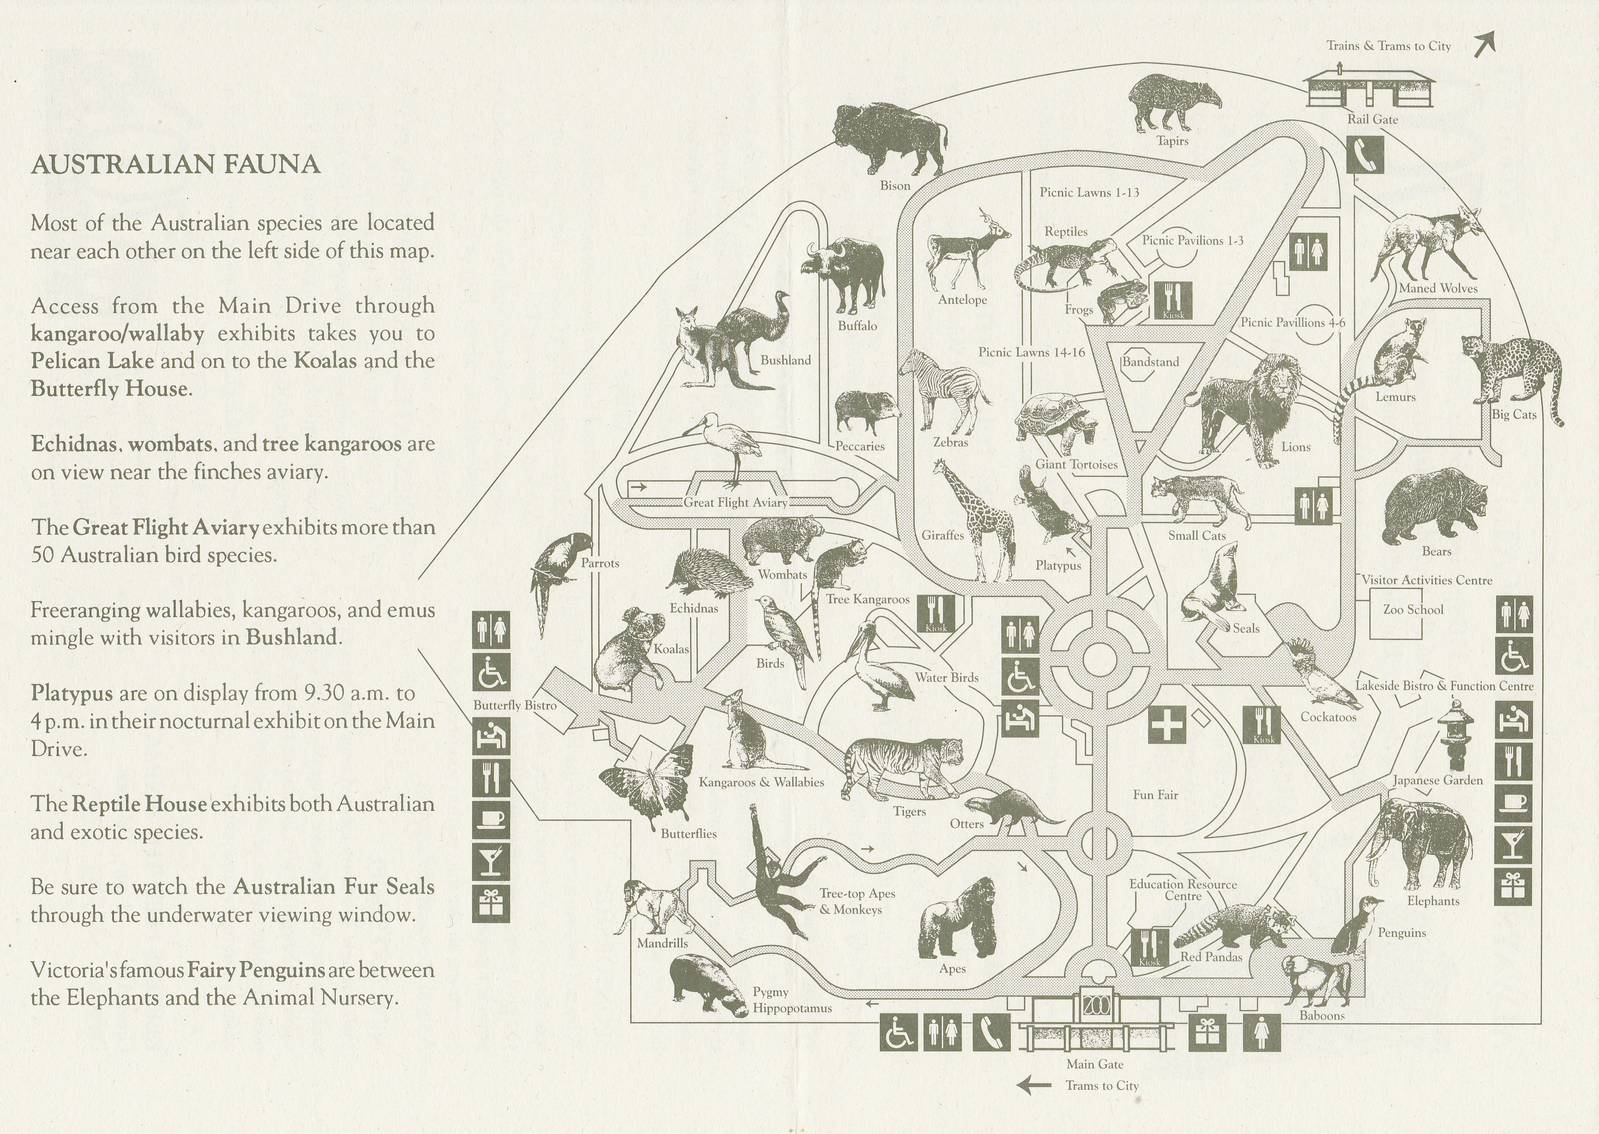 Old Australia Zoo Map.Melbourne Zoo Map 1993 Zoochat